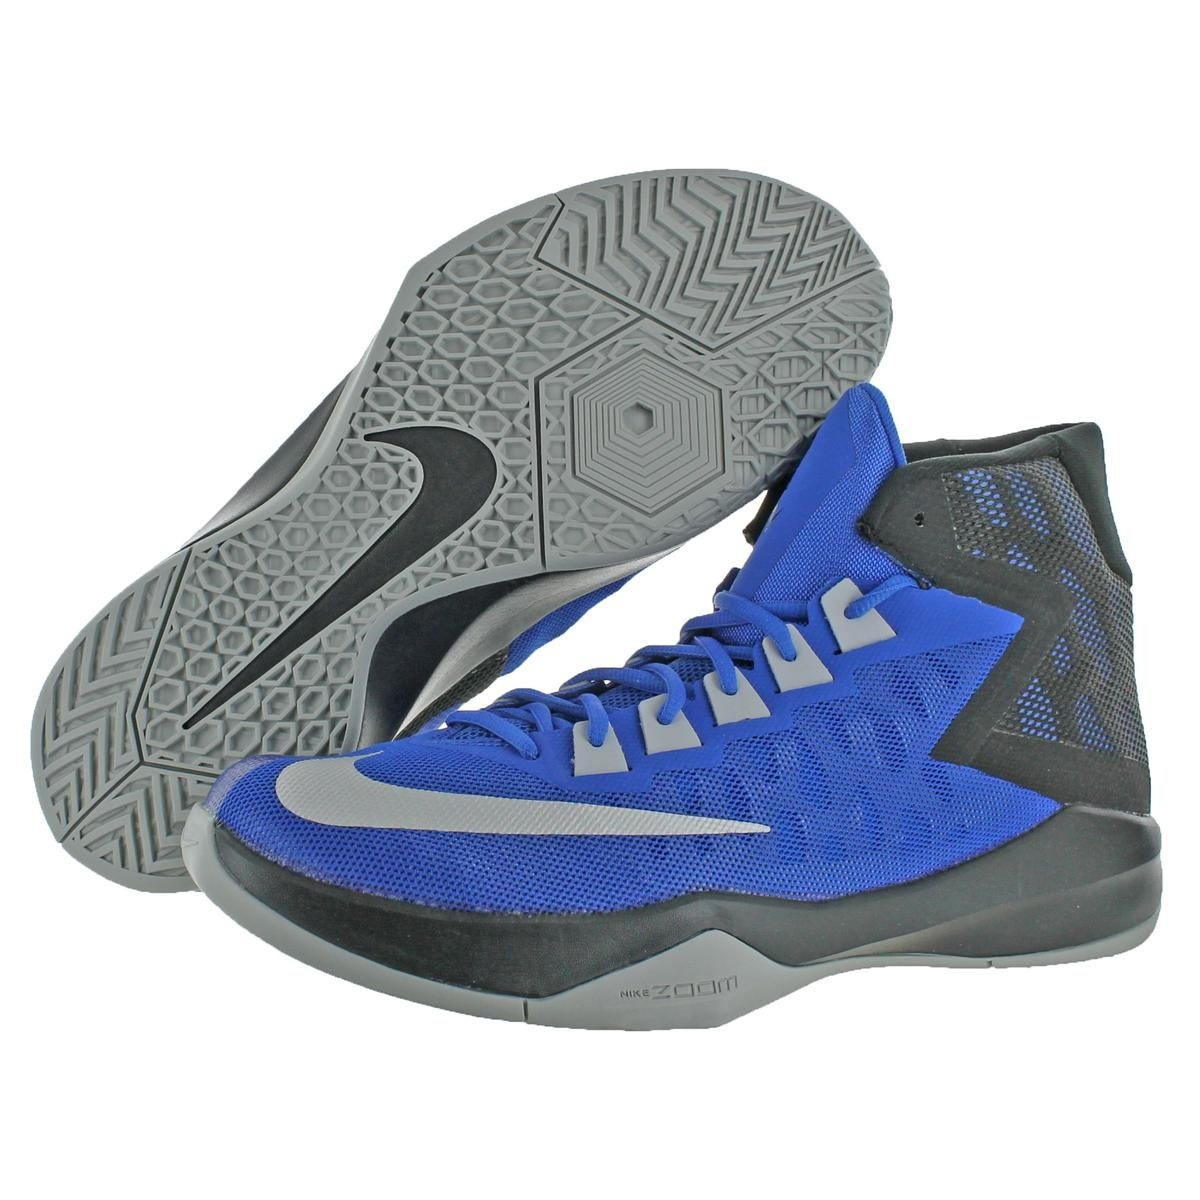 1f05405f523e Shop Nike Mens Zoom Devosion Basketball Shoes High Top Color block - Free  Shipping Today - Overstock - 22118764